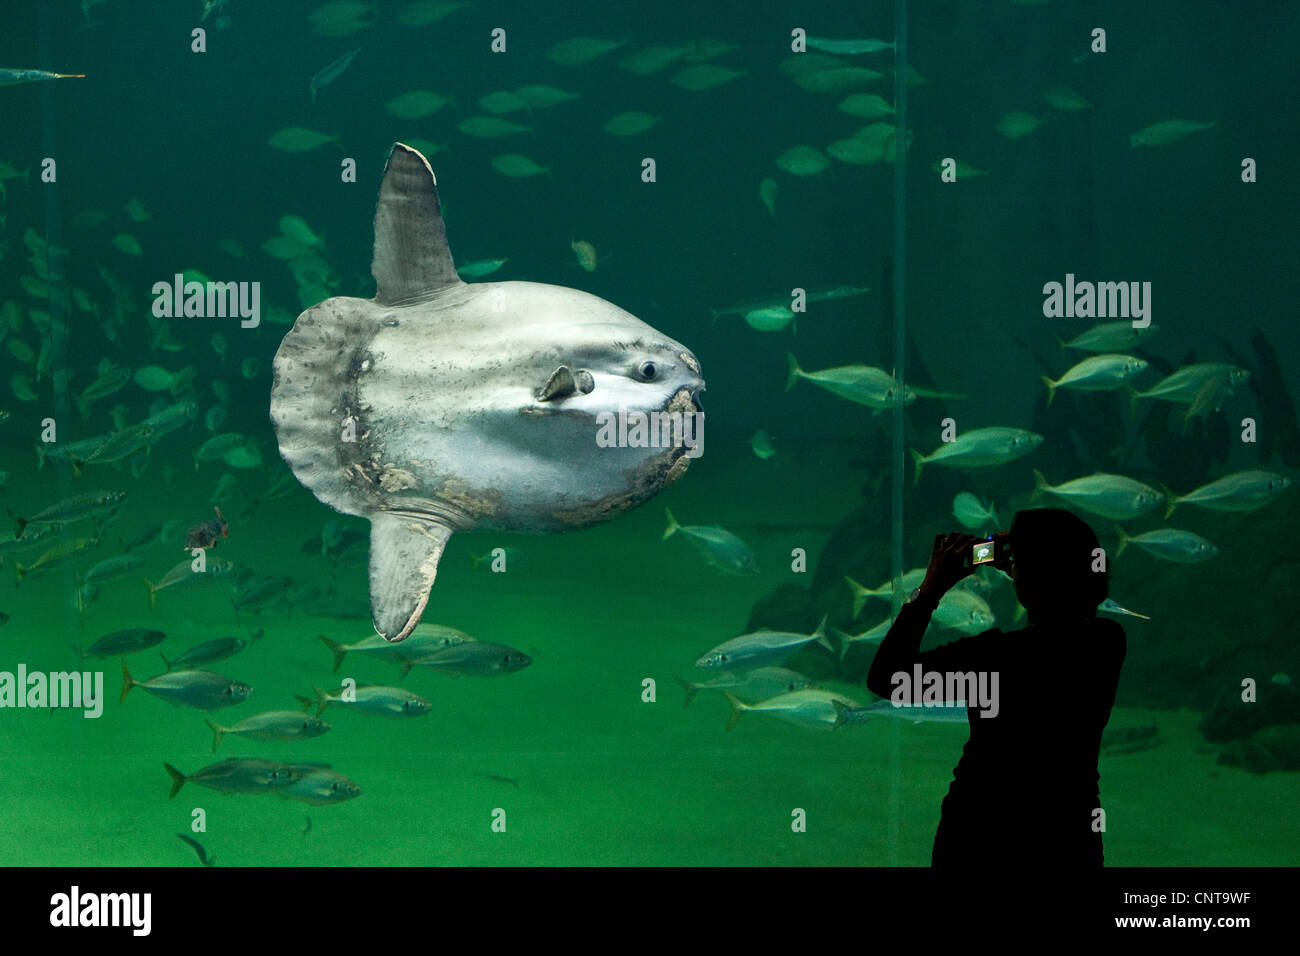 ocean sunfish (Mola mola), visitor taking photos of heaviest known bony fish in the world - Stock Image